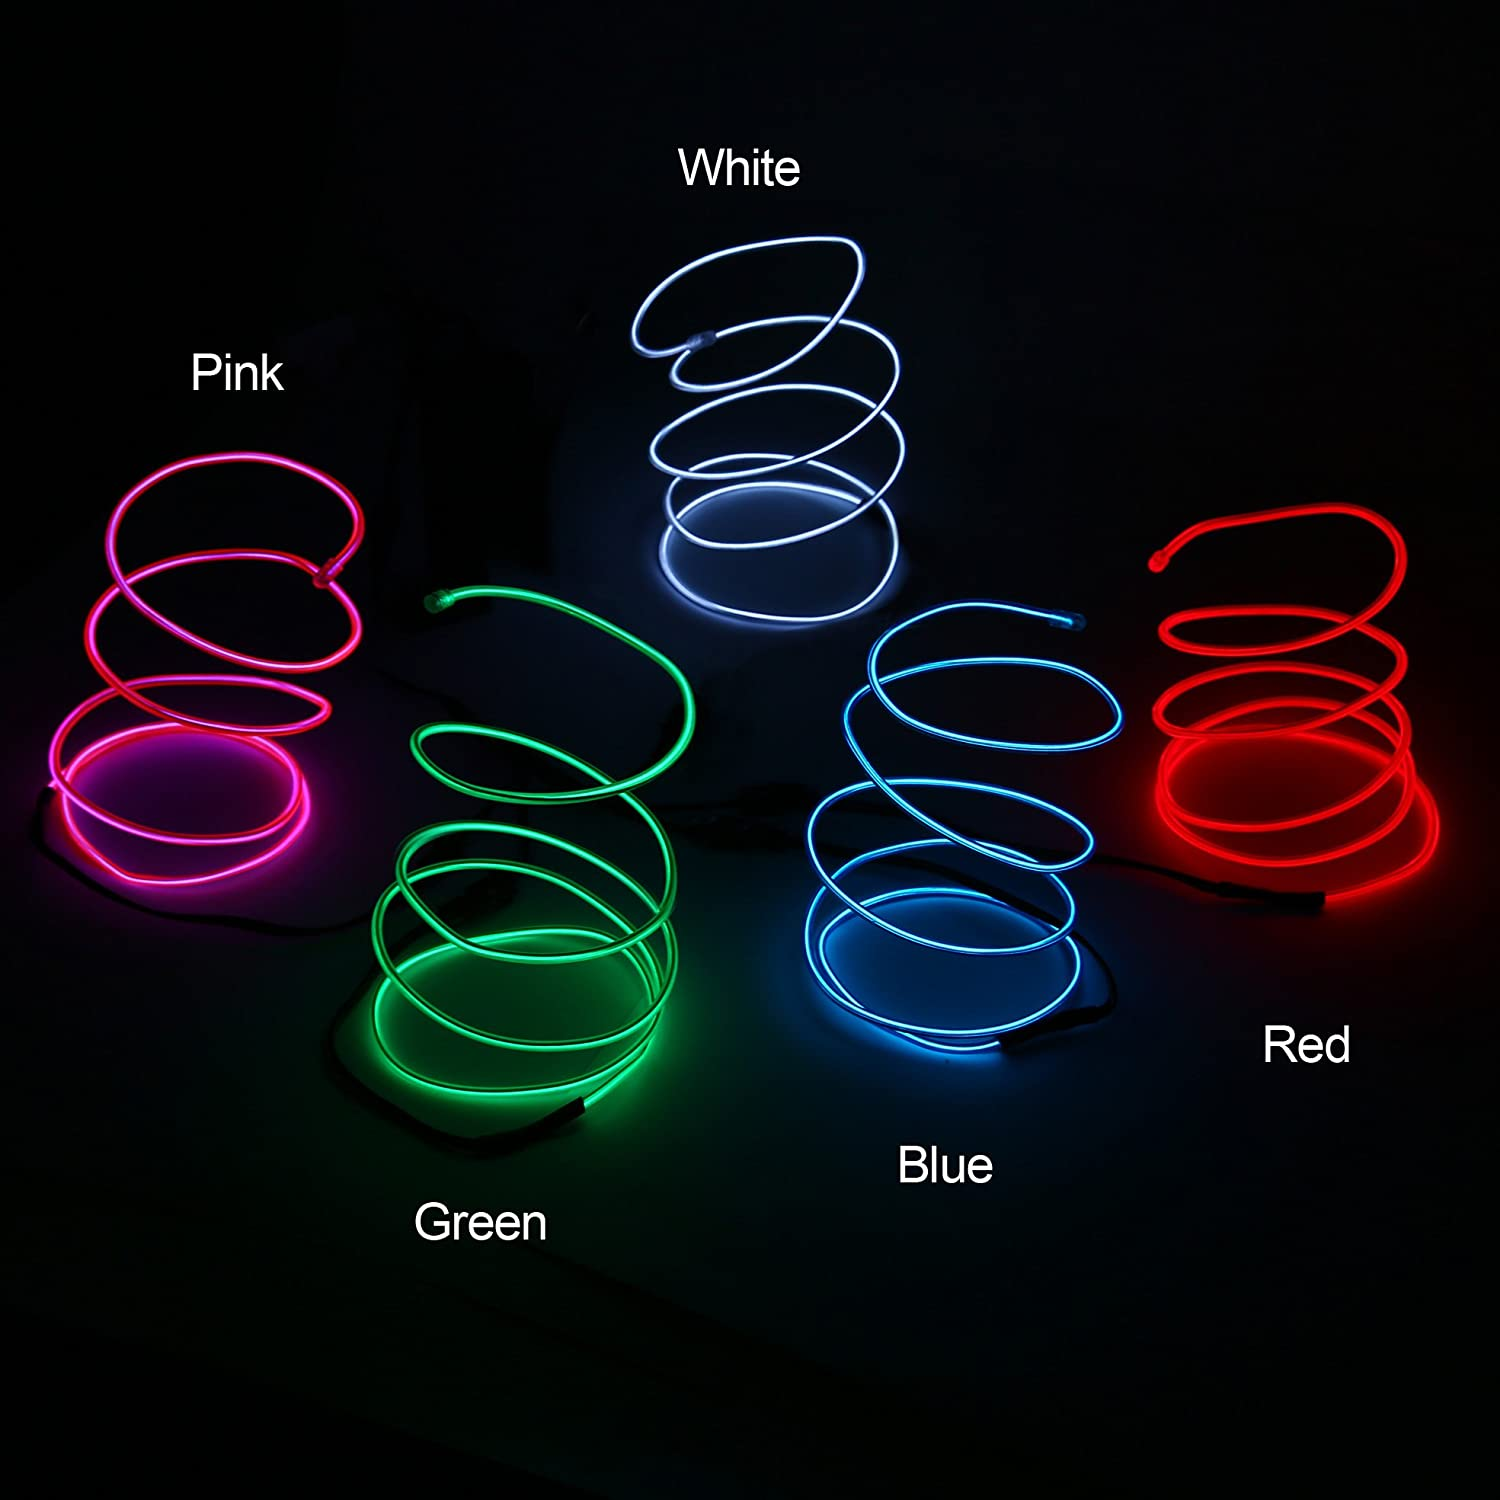 Blazing Fun Shapable EL Wire, Neon Glowing Led Cable/EL Wire with AA Battery Inverter for Halloween Christmas Party DIY Decoration, 5 by 1 Meter(White/Blue/Red/Green/Pink)